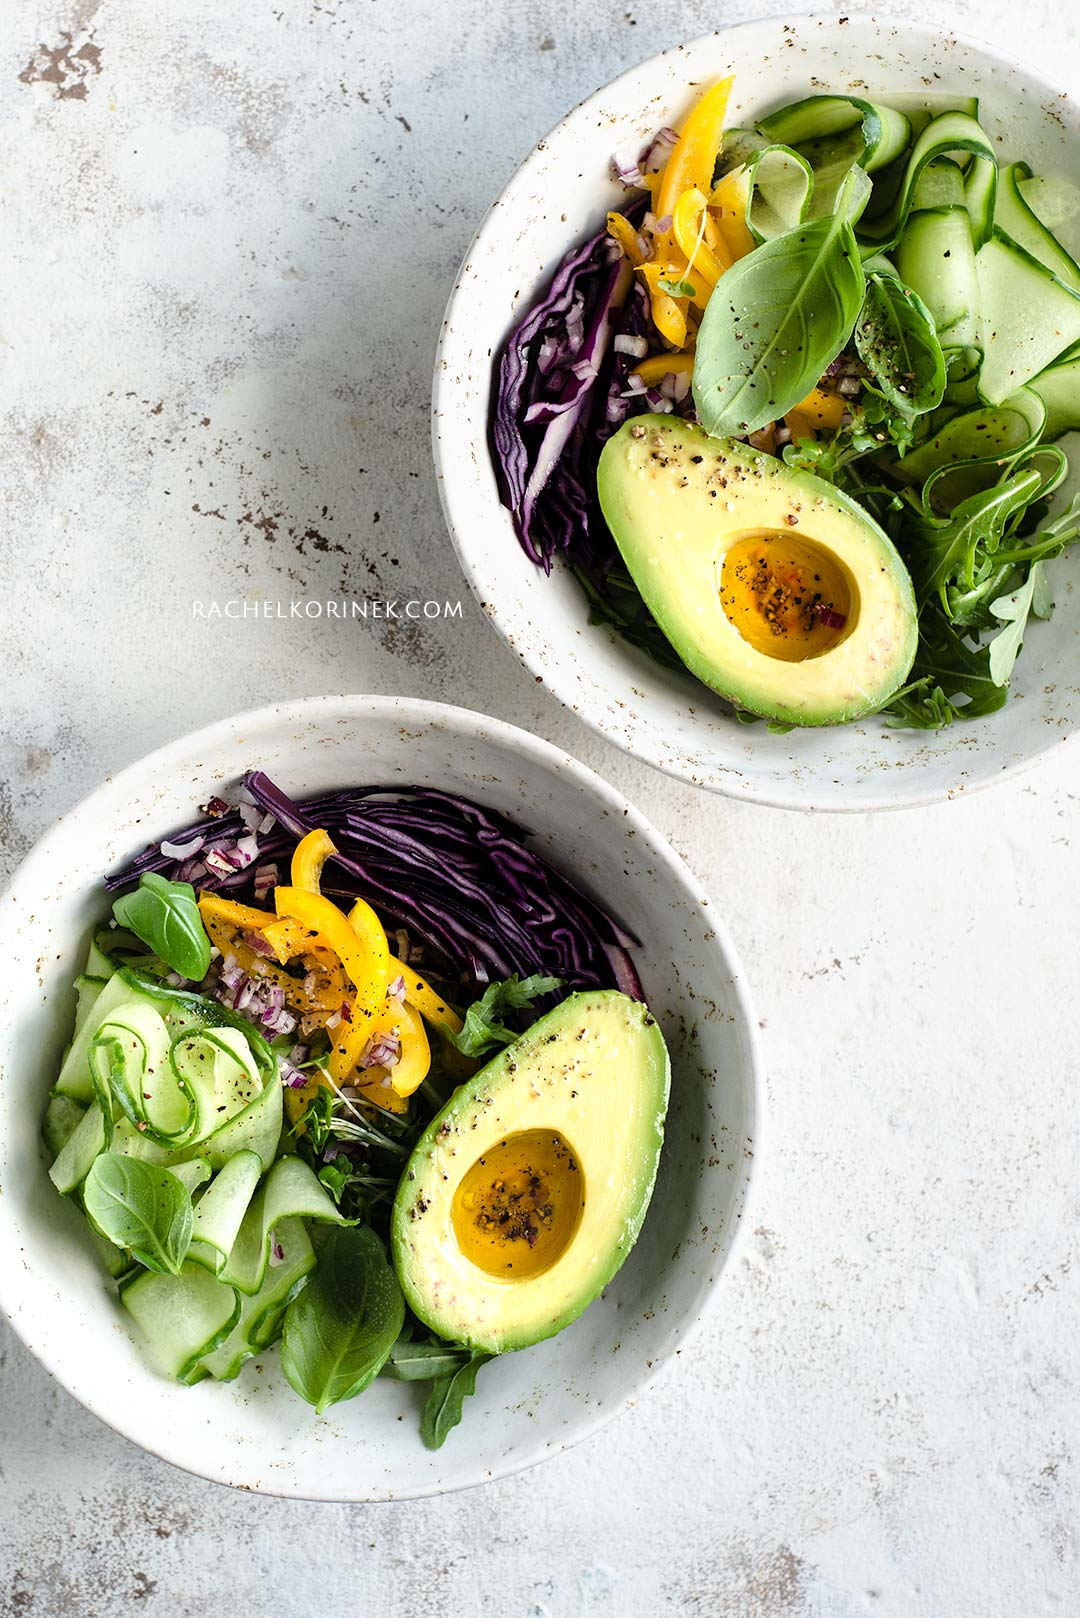 Rachel Korinek Food Photographer | Avocado Salad Bowl. Click to check out my latest food photography projects.  #twolovesstudio #beautifulcuisine #foodbloggerpro #foodphotography #learnfoodphotography #foodblogger #learnphotography #foodstyling #lightingtips #naturallight #foodphotographer